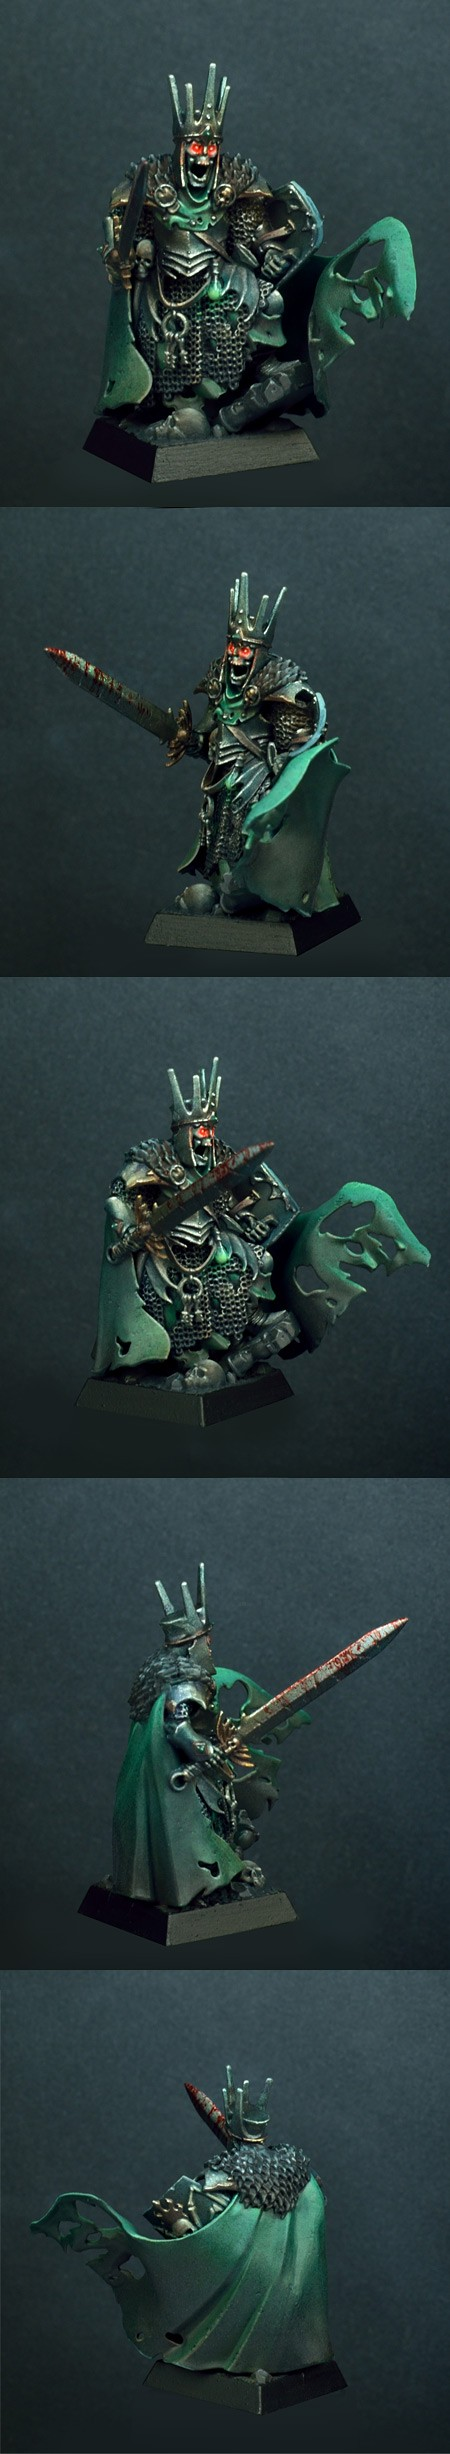 Tendrae - Undead Warlord